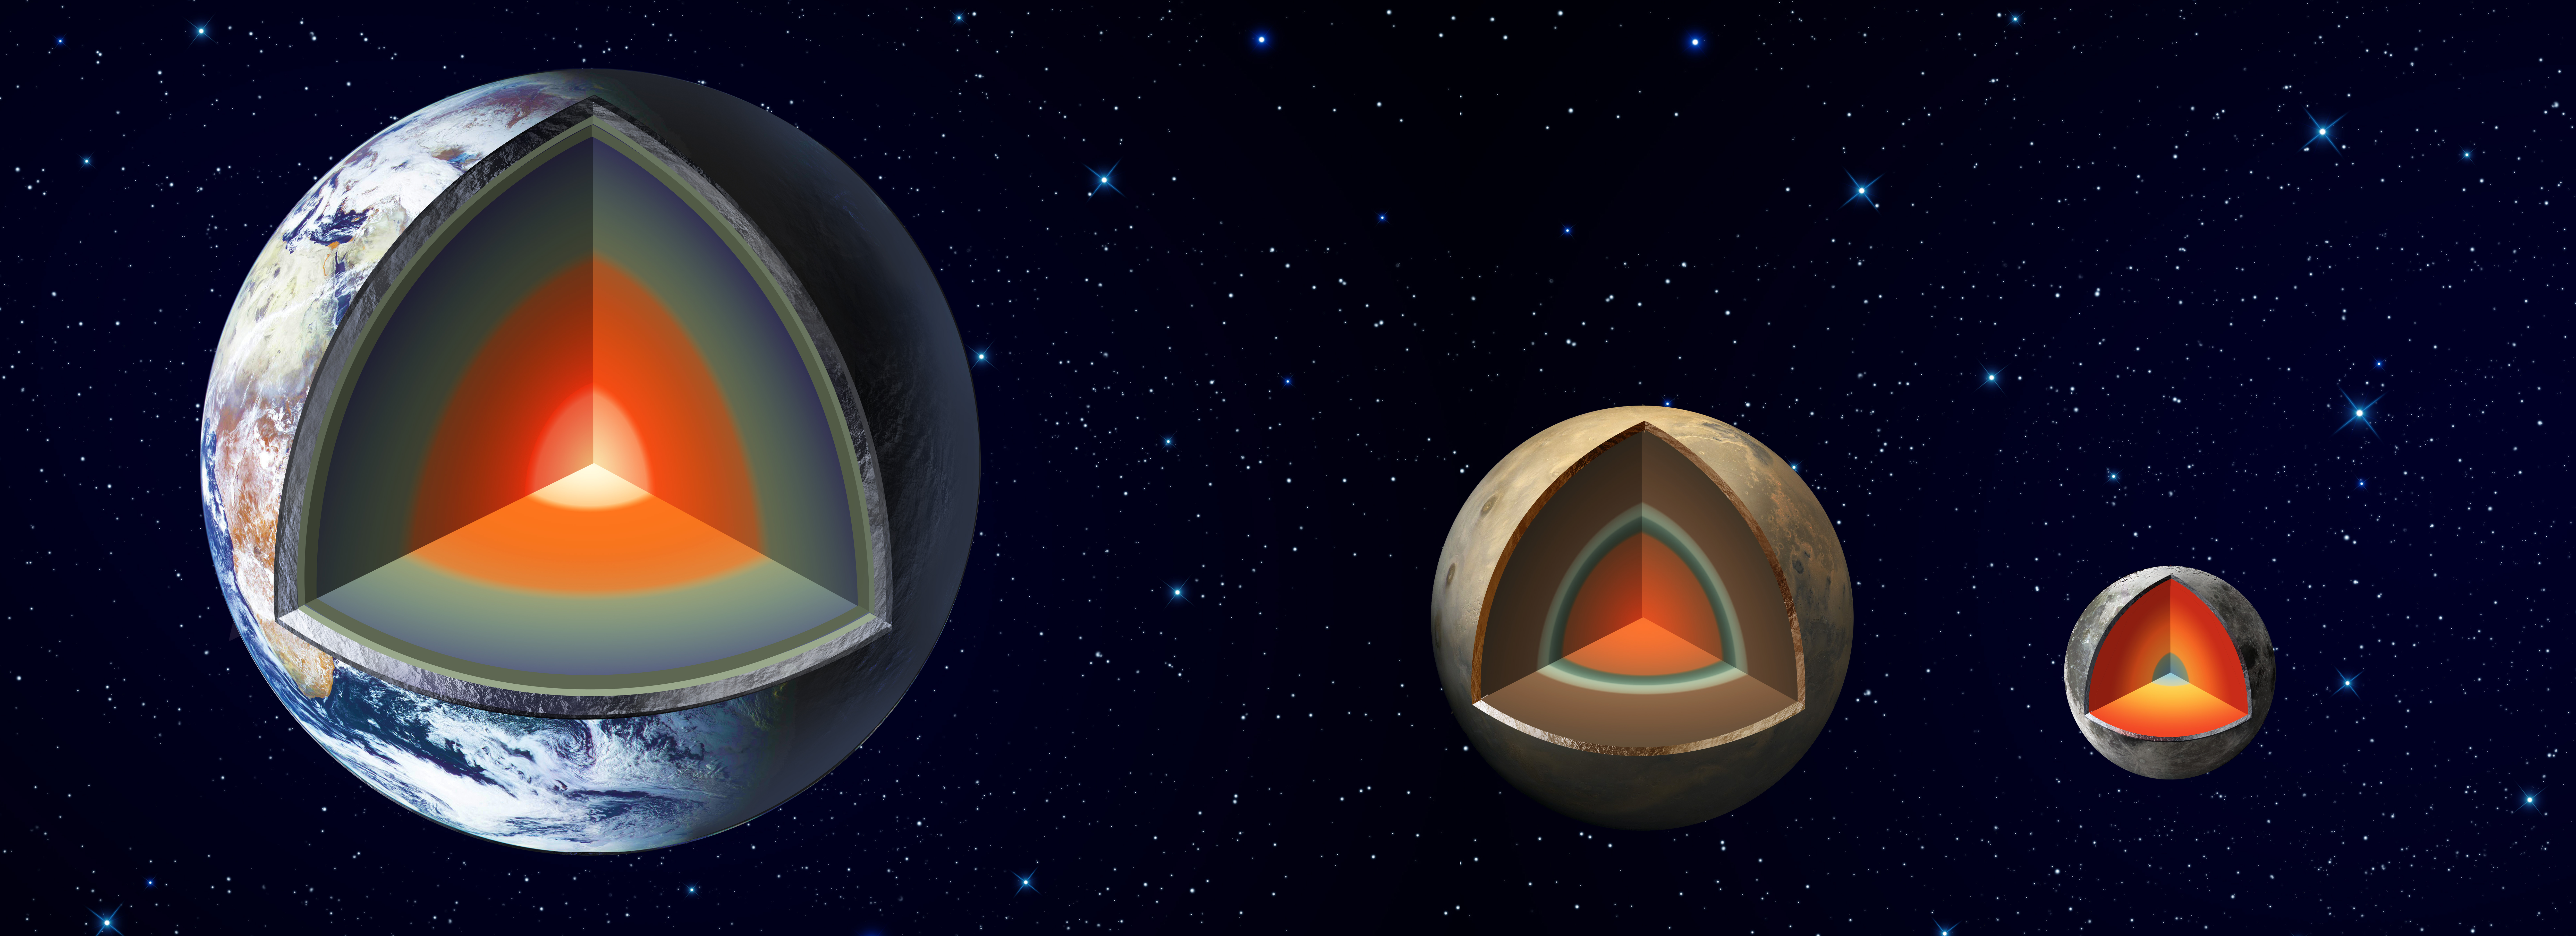 Artist's concept of the interiors of Earth, Mars and Earth's moon.